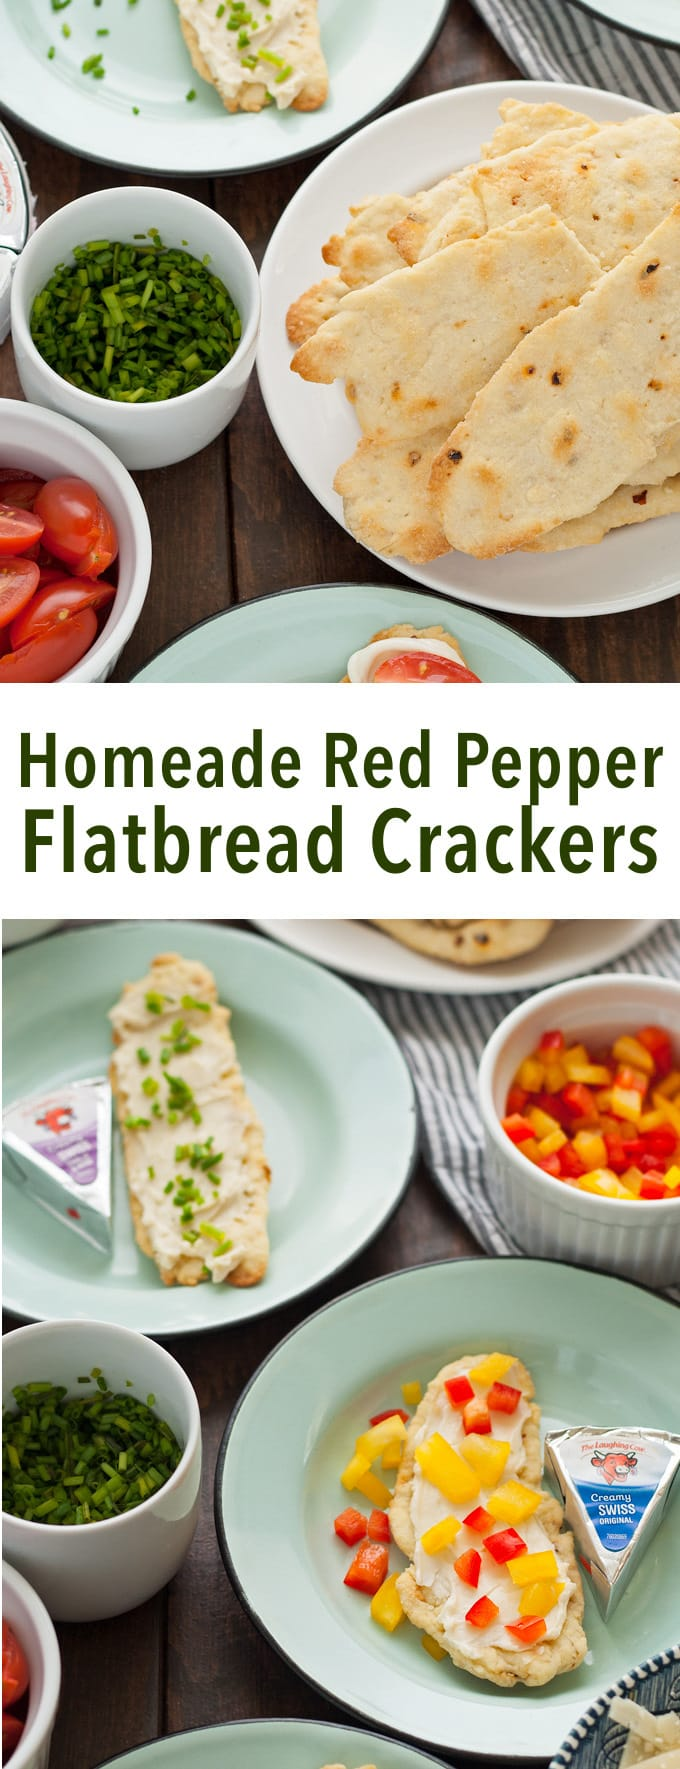 Try these homemade red pepper flatbread crackers with Laughing Cow cheese and some of these easy toppings to reinvent snacking! | honeyandbirch.com